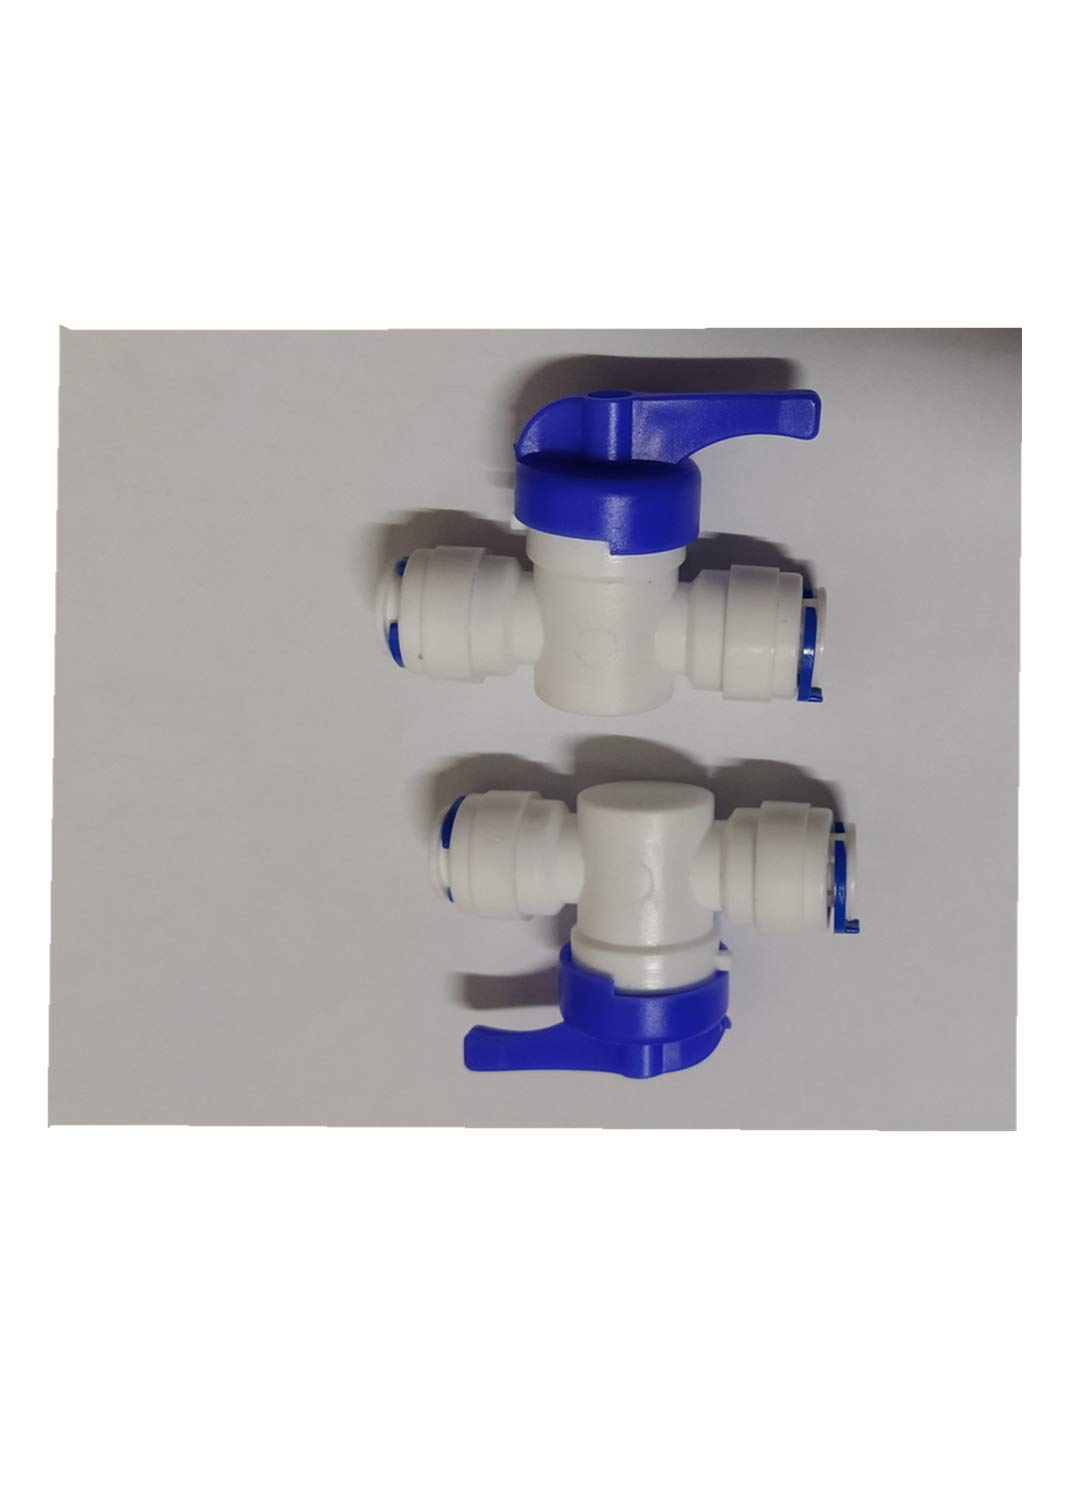 1//4 OD Inline Shutoff Ball Valve CUIWEI 1//4 OD Quick Connect Push in to Connect Water Tube Fitting